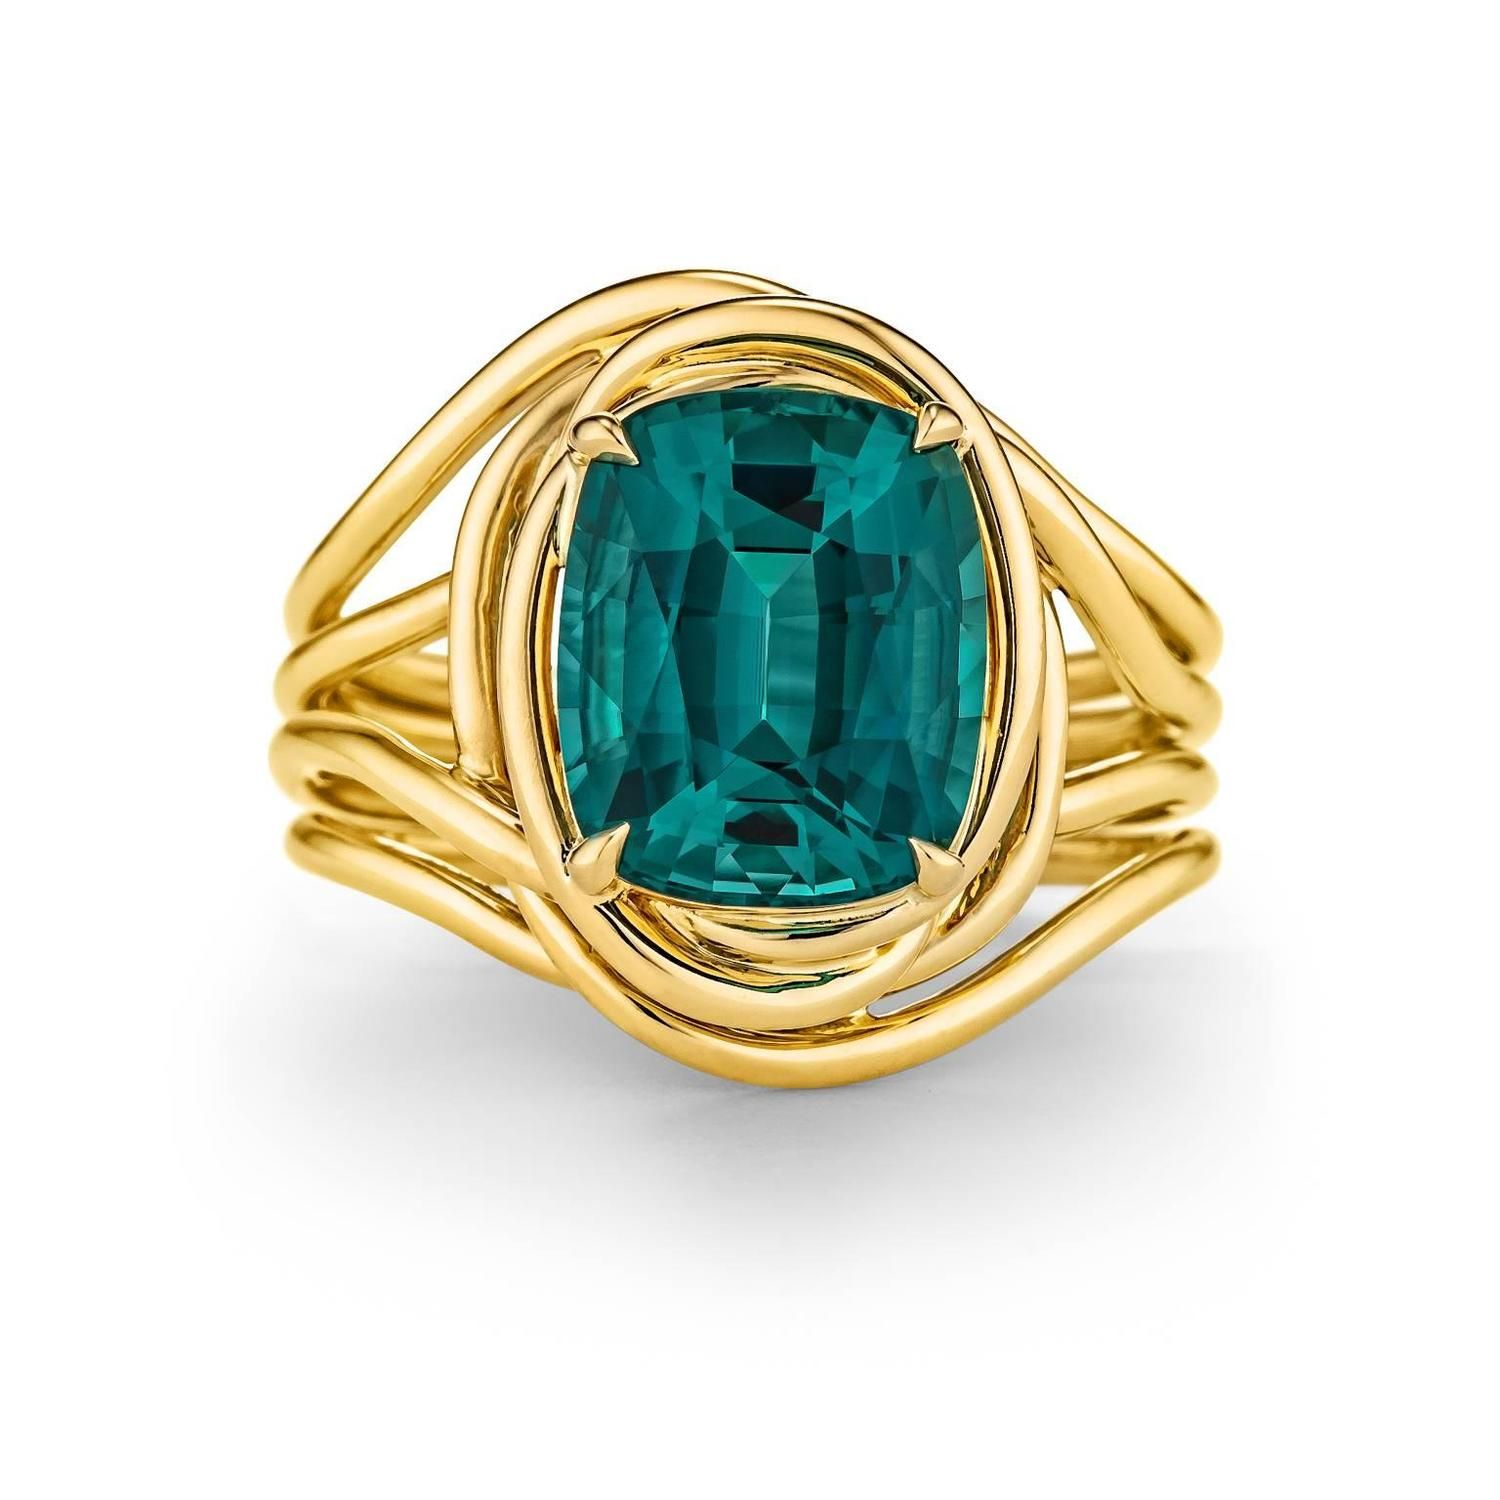 Tiffany and Co Schlumberger Indicolite Tourmaline Gold Ring